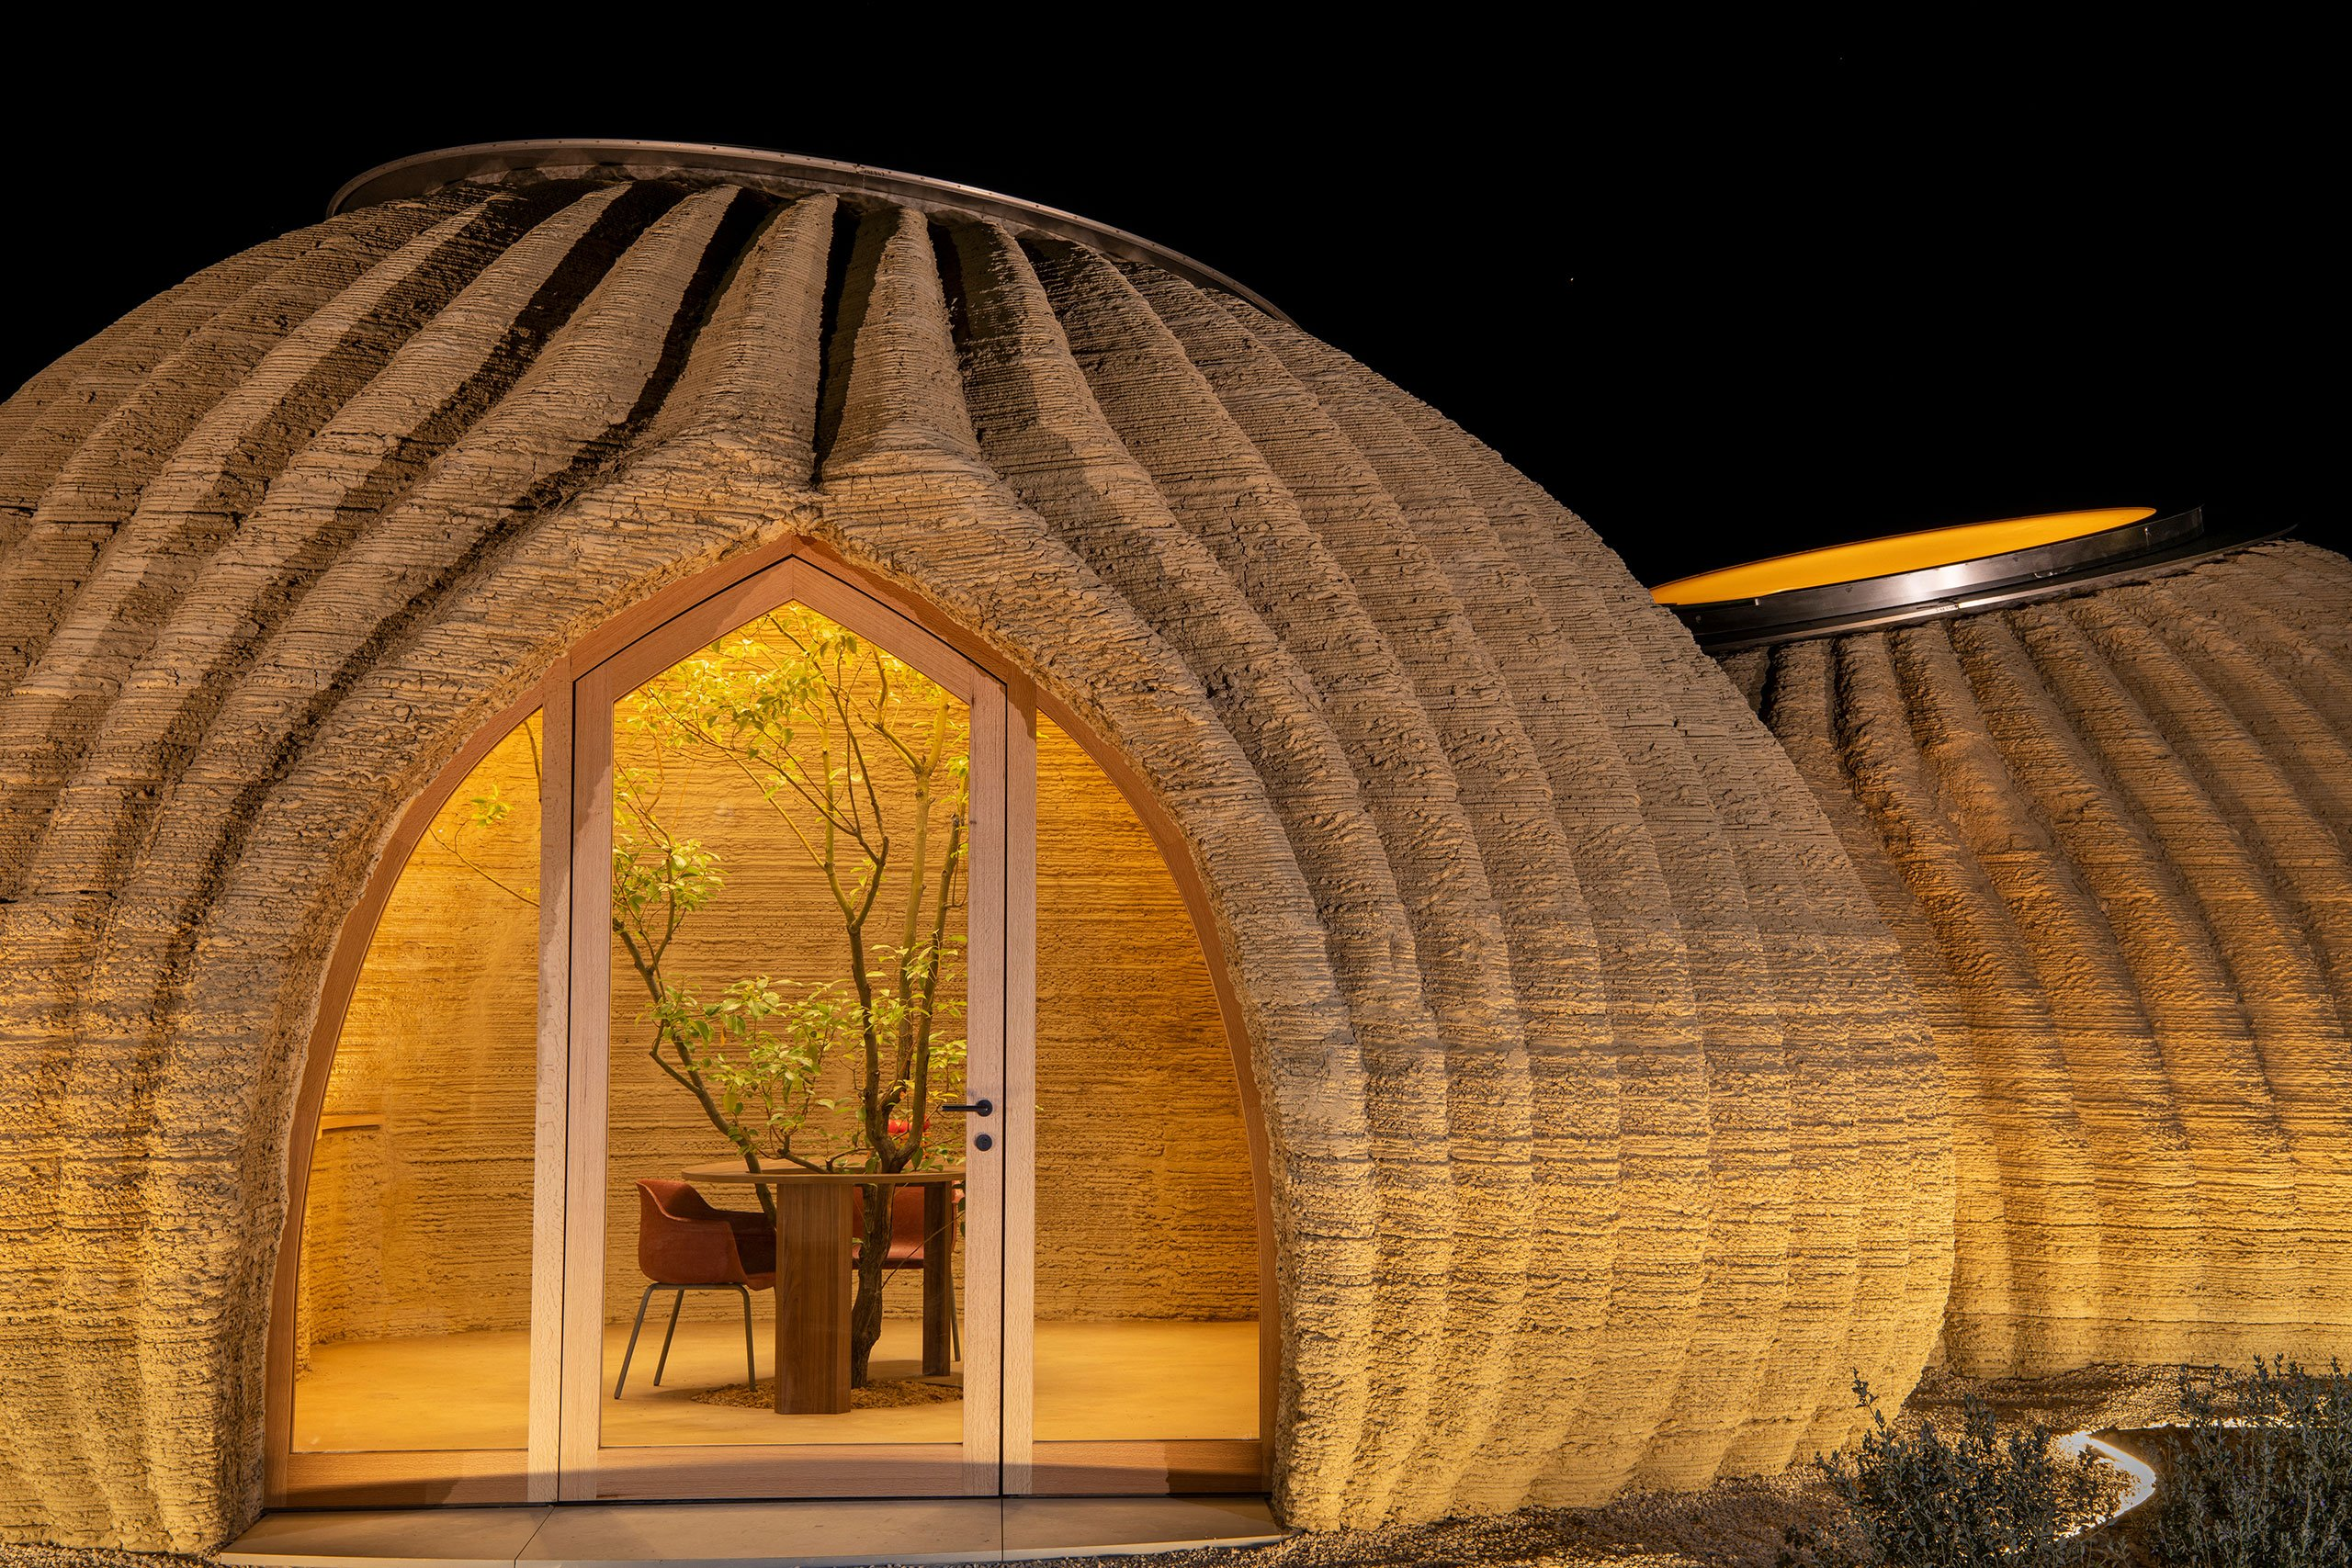 TECLA, 3D Printed Habitat by WASP and Mario Cucinella Architects.Photo by Iago Corazza.